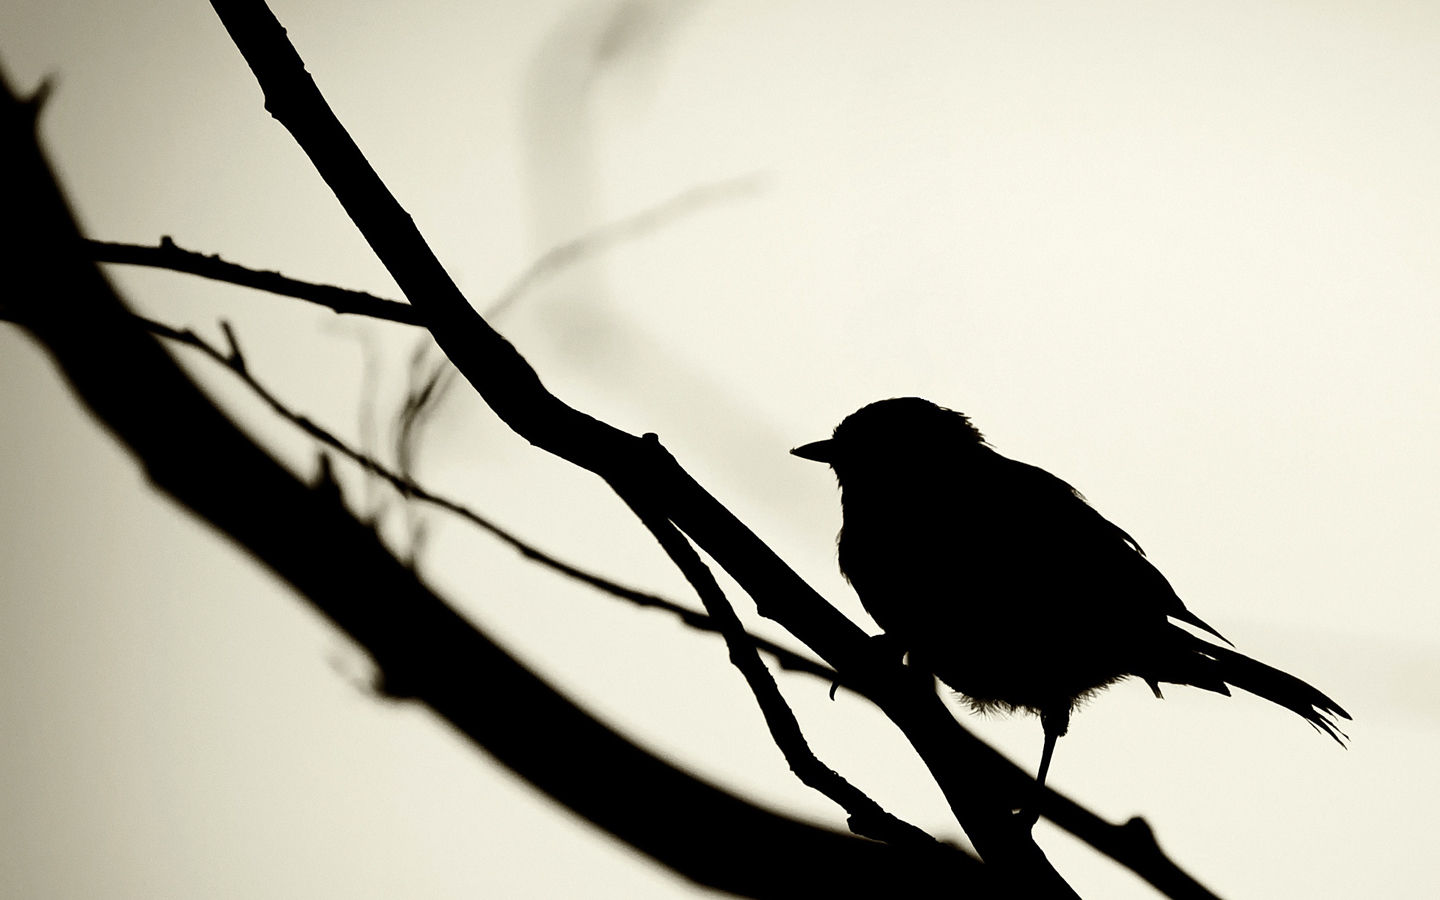 Birds silhouettes grayscale branches